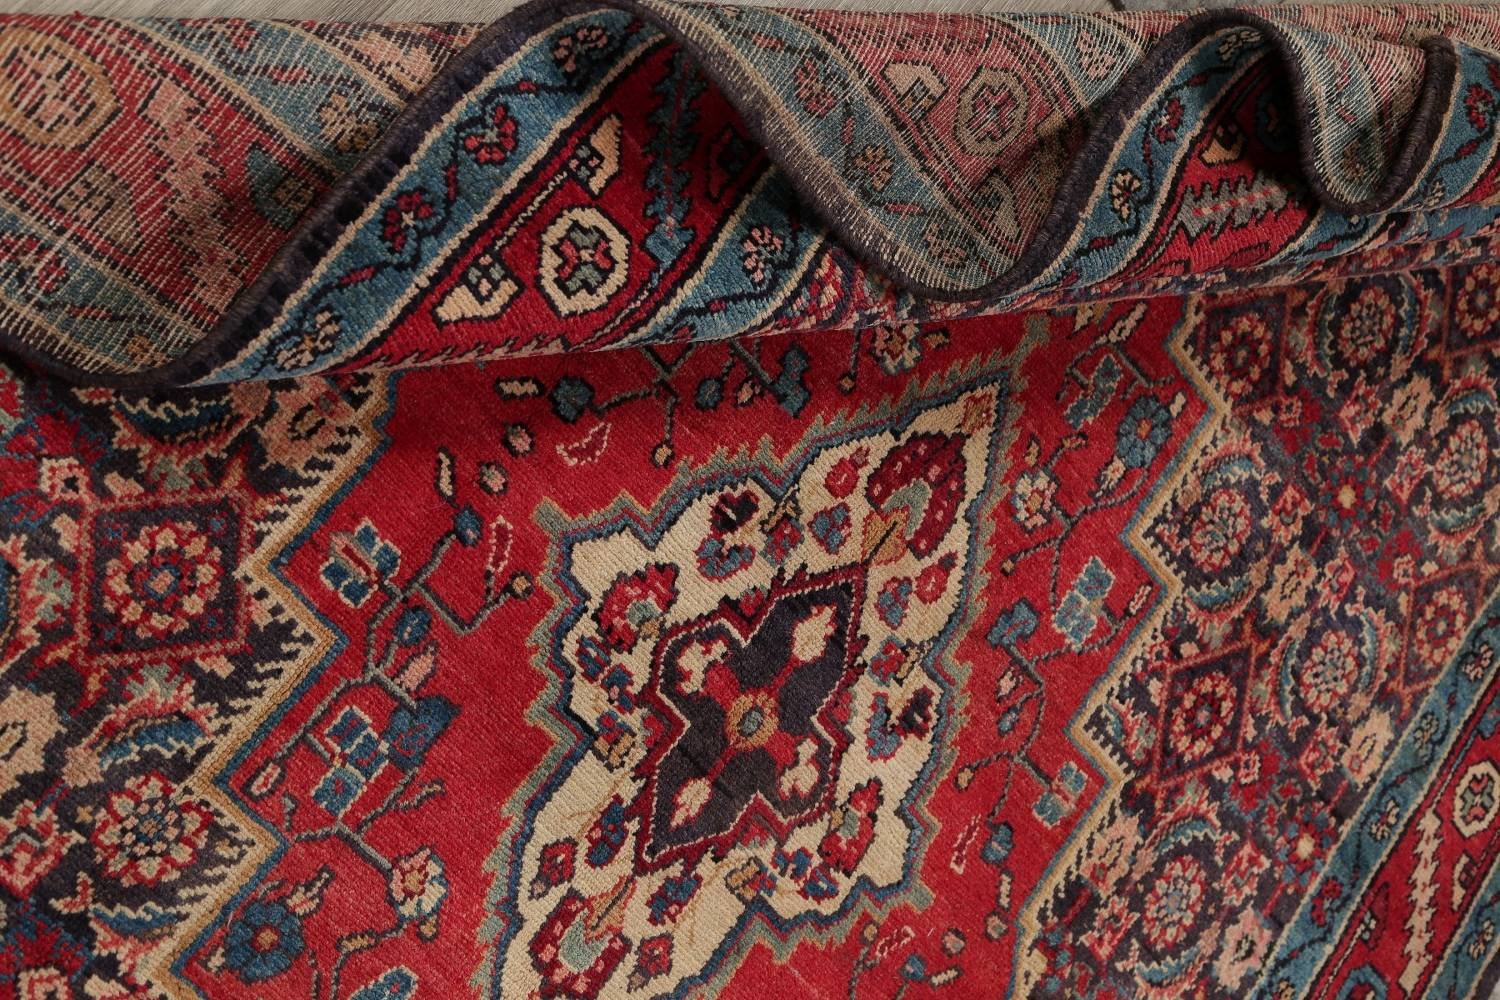 Antique Bakhtiari Persian Hand-Knotted 5x10 Wool Runner Rug image 16